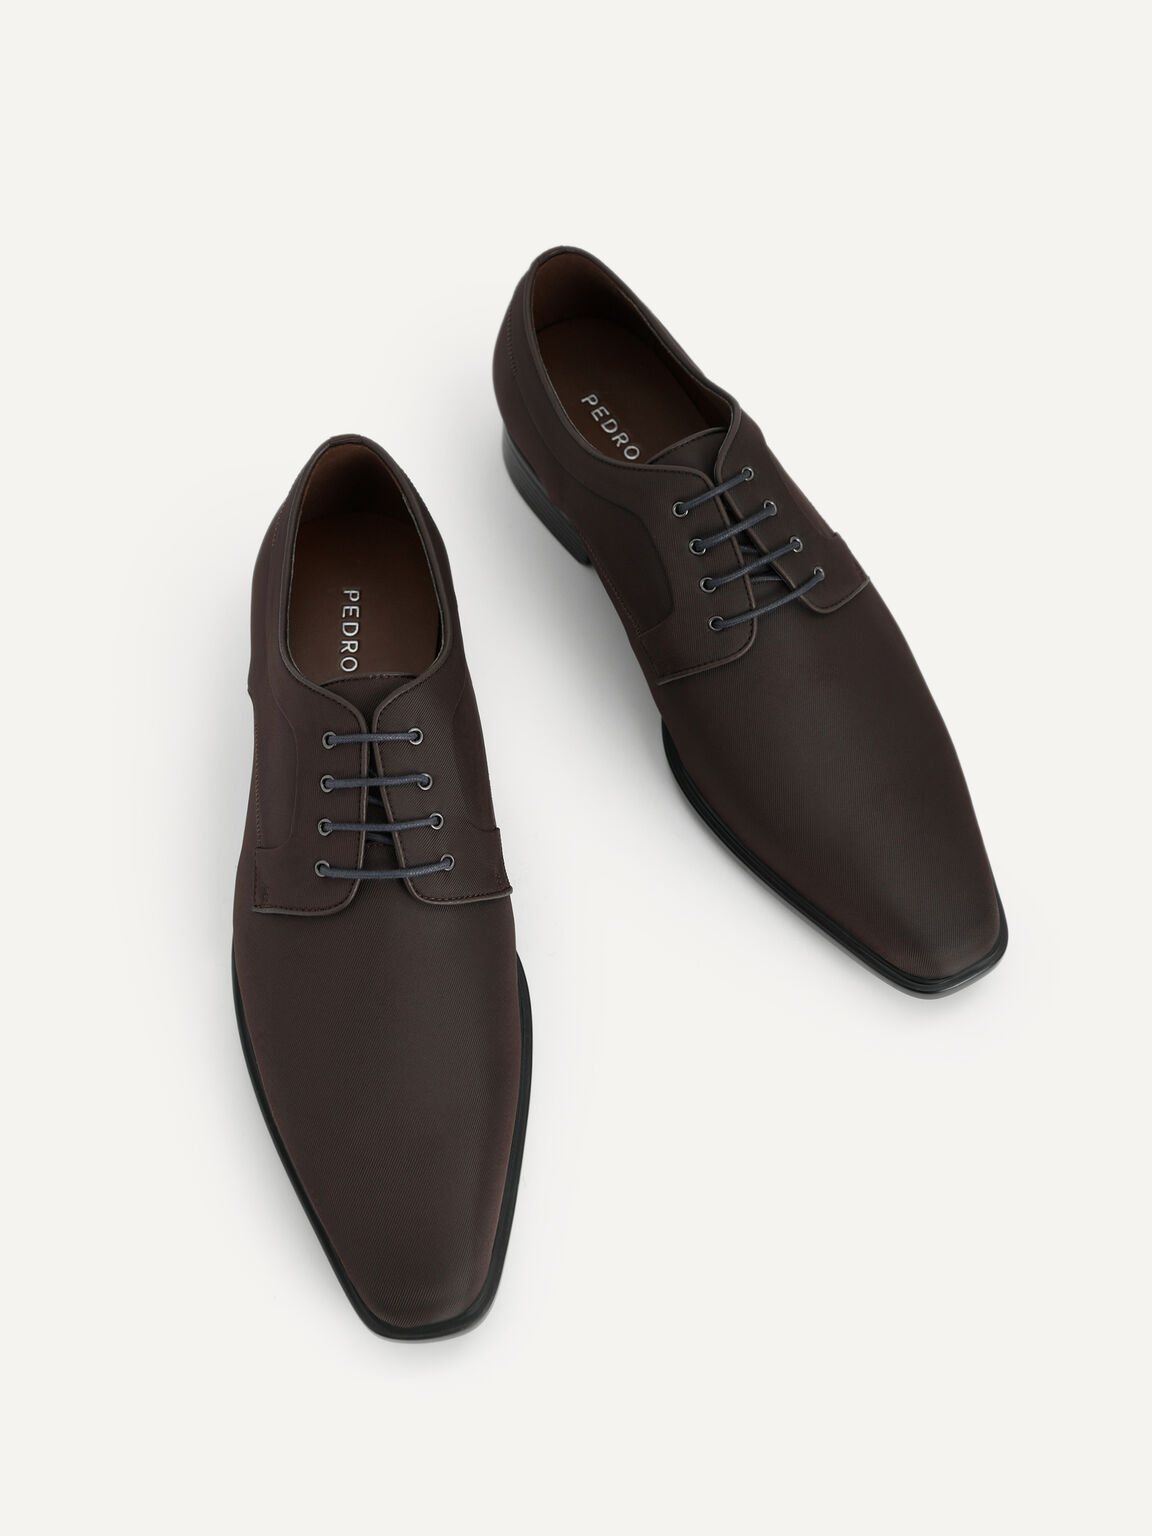 Pointed Square Toe Derby Shoes, Dark Brown, hi-res